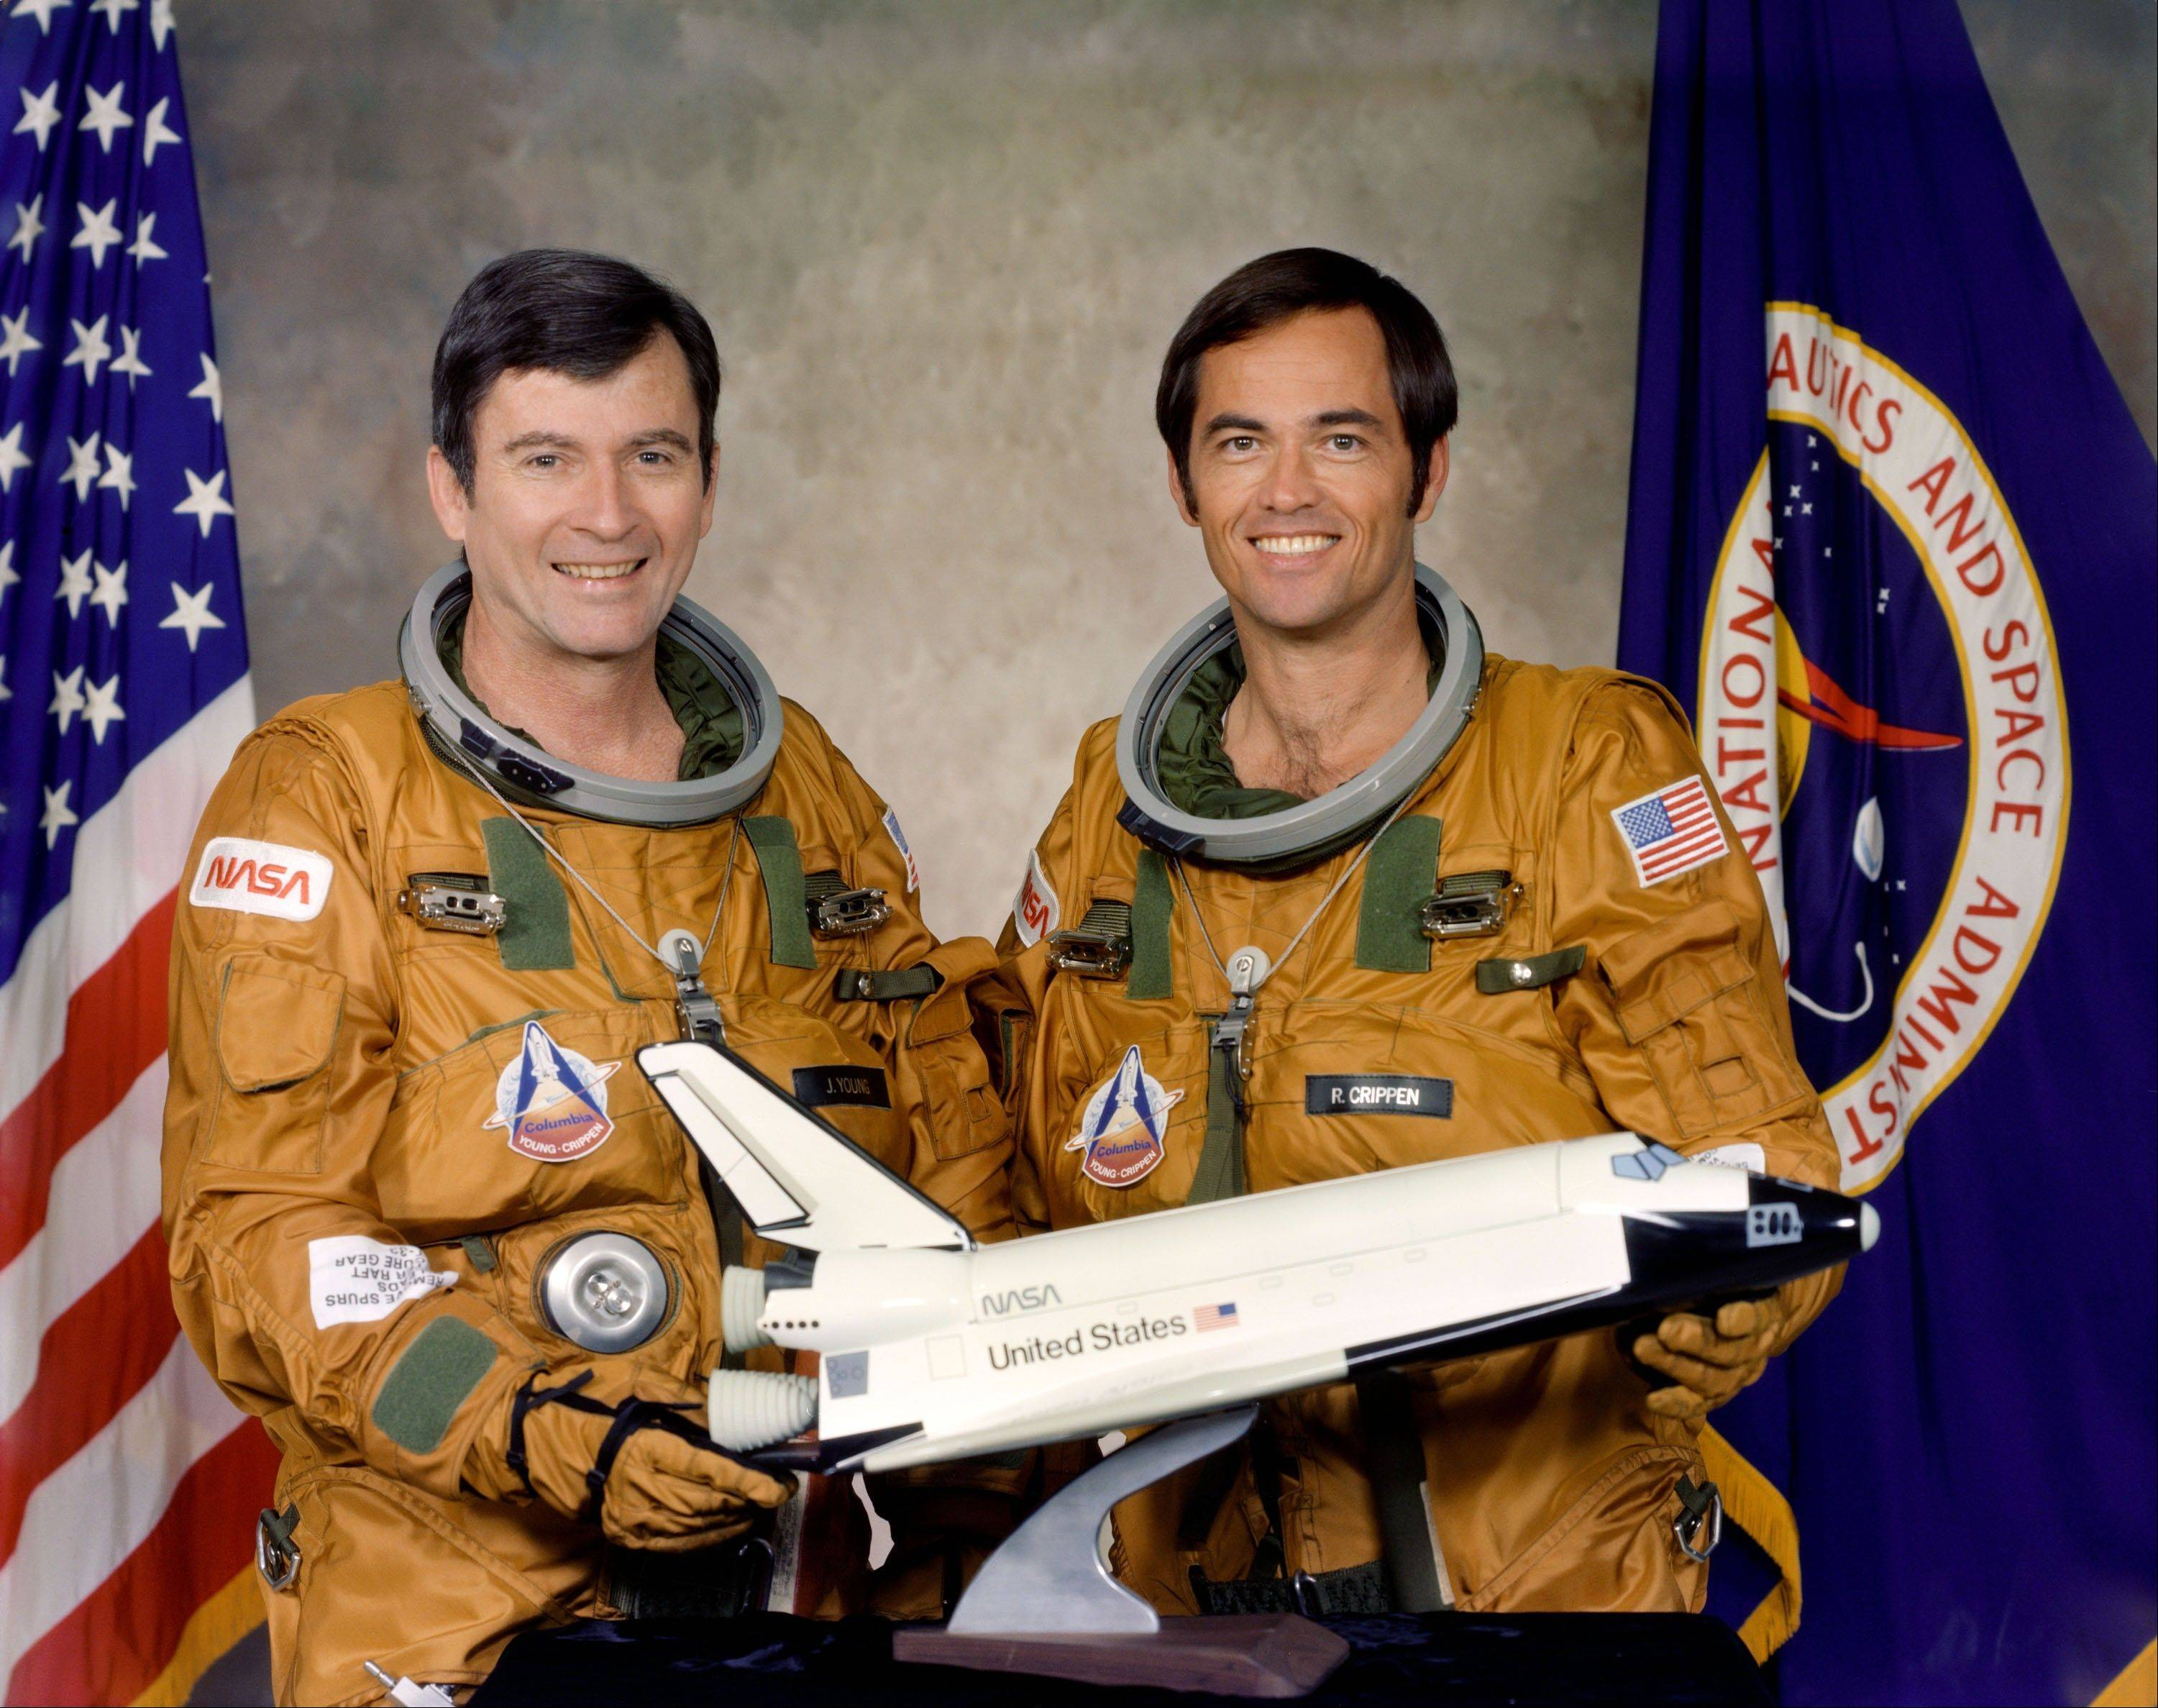 NASA's Final 4 on the shuttle's farewell flight